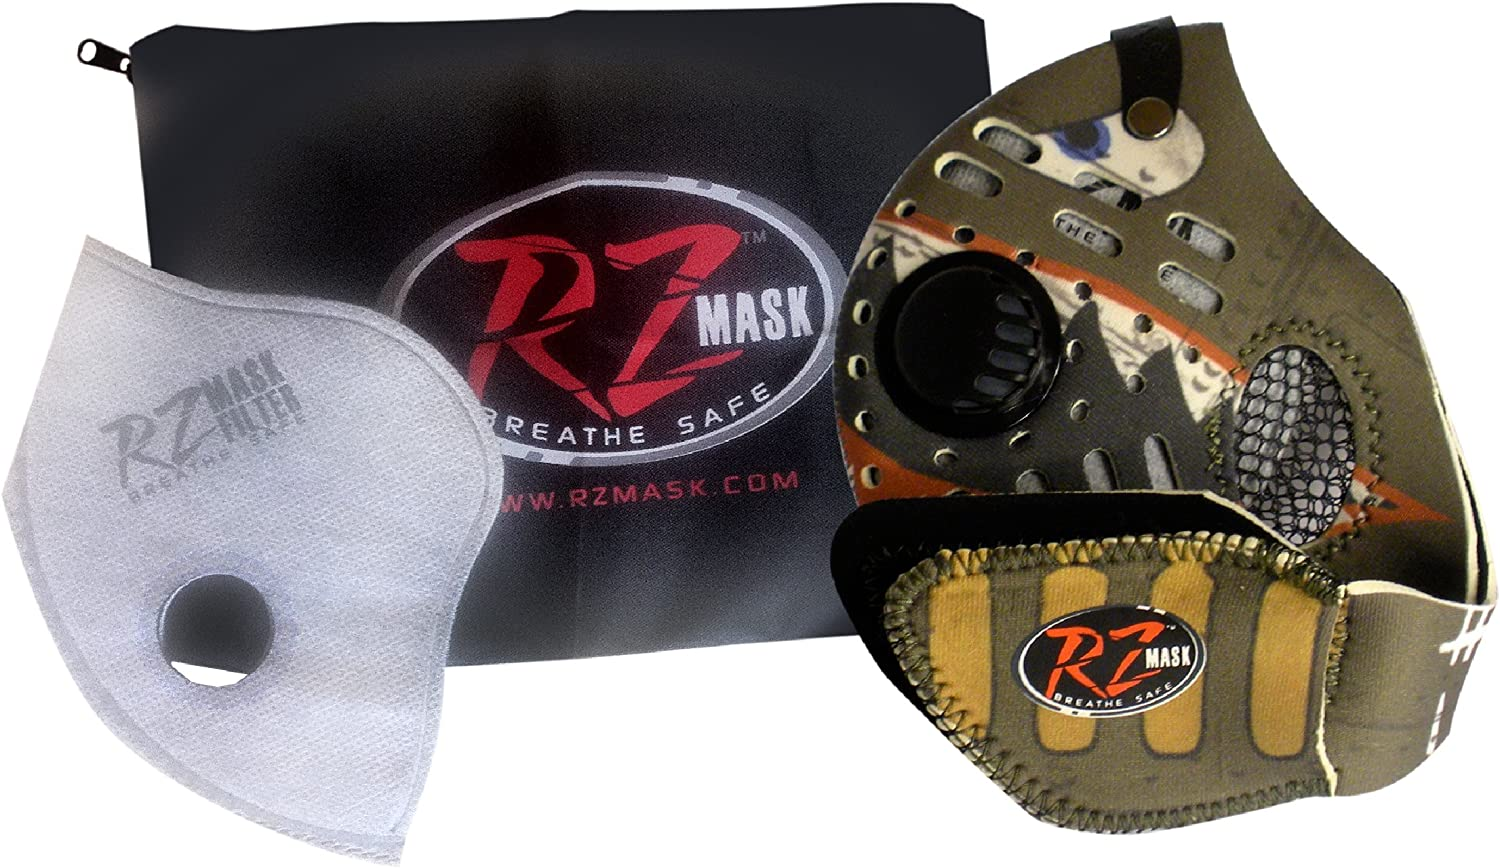 Large RZ Mask Breathe Safe Facemask Spitfire